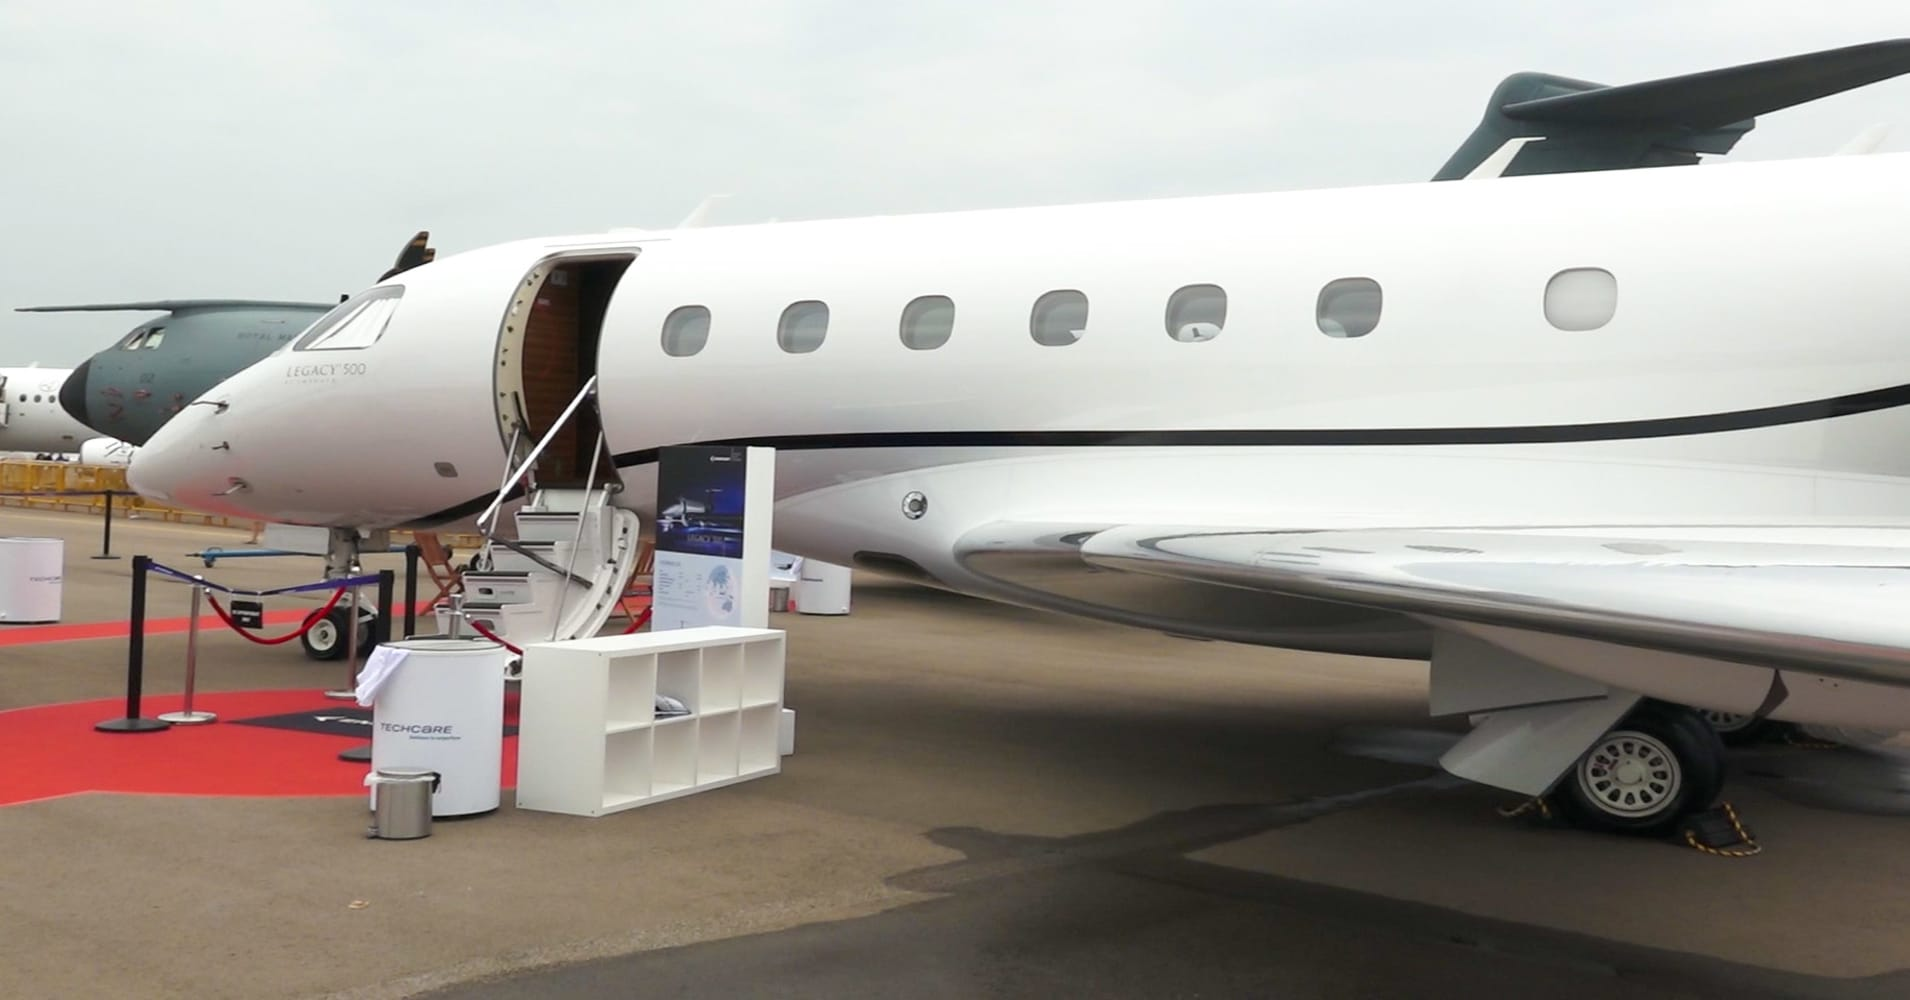 We went inside 3 private jets, starting at $10 million